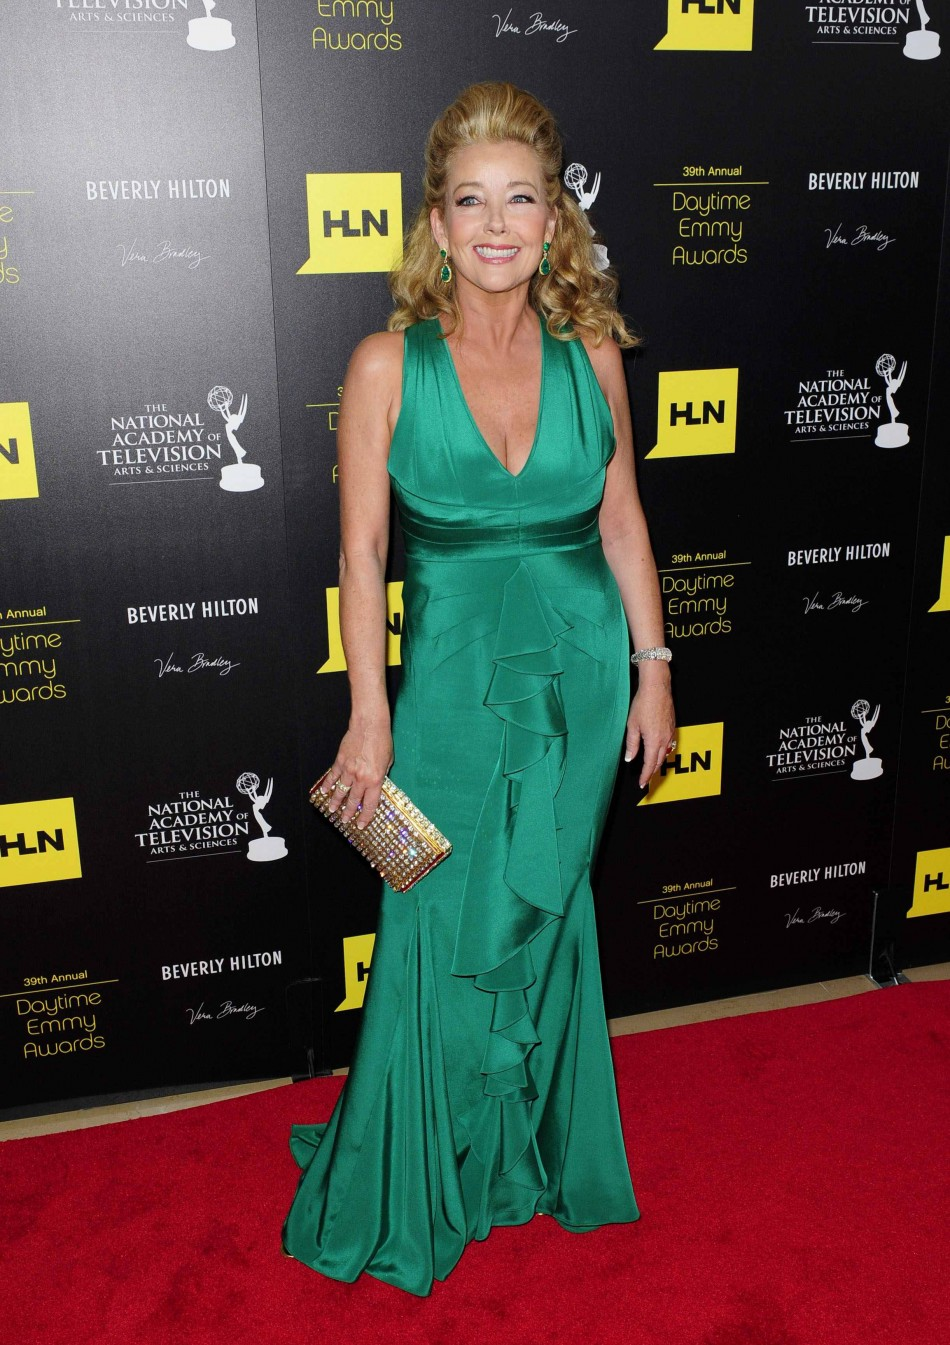 Melody Thomas Scott arrives at the 39th Daytime Emmy Awards in Beverly Hills